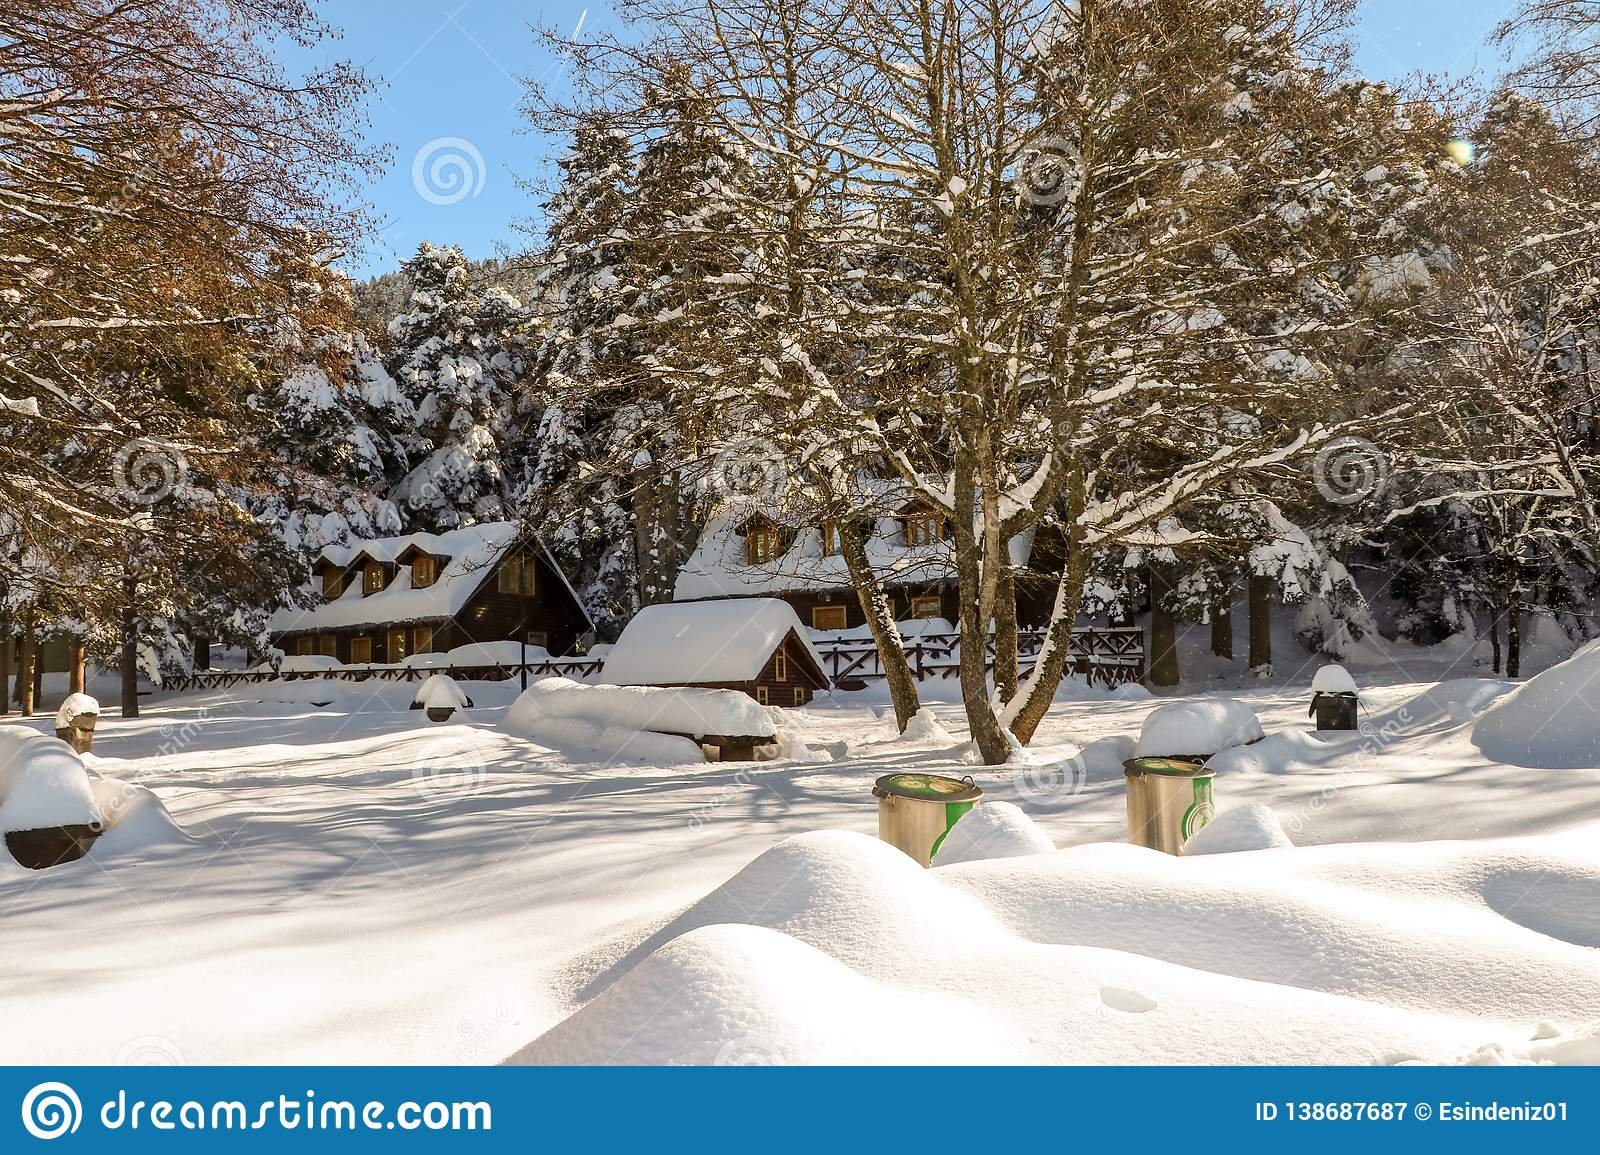 Golcuk / Bolu / Turkey, winter season snow landscape